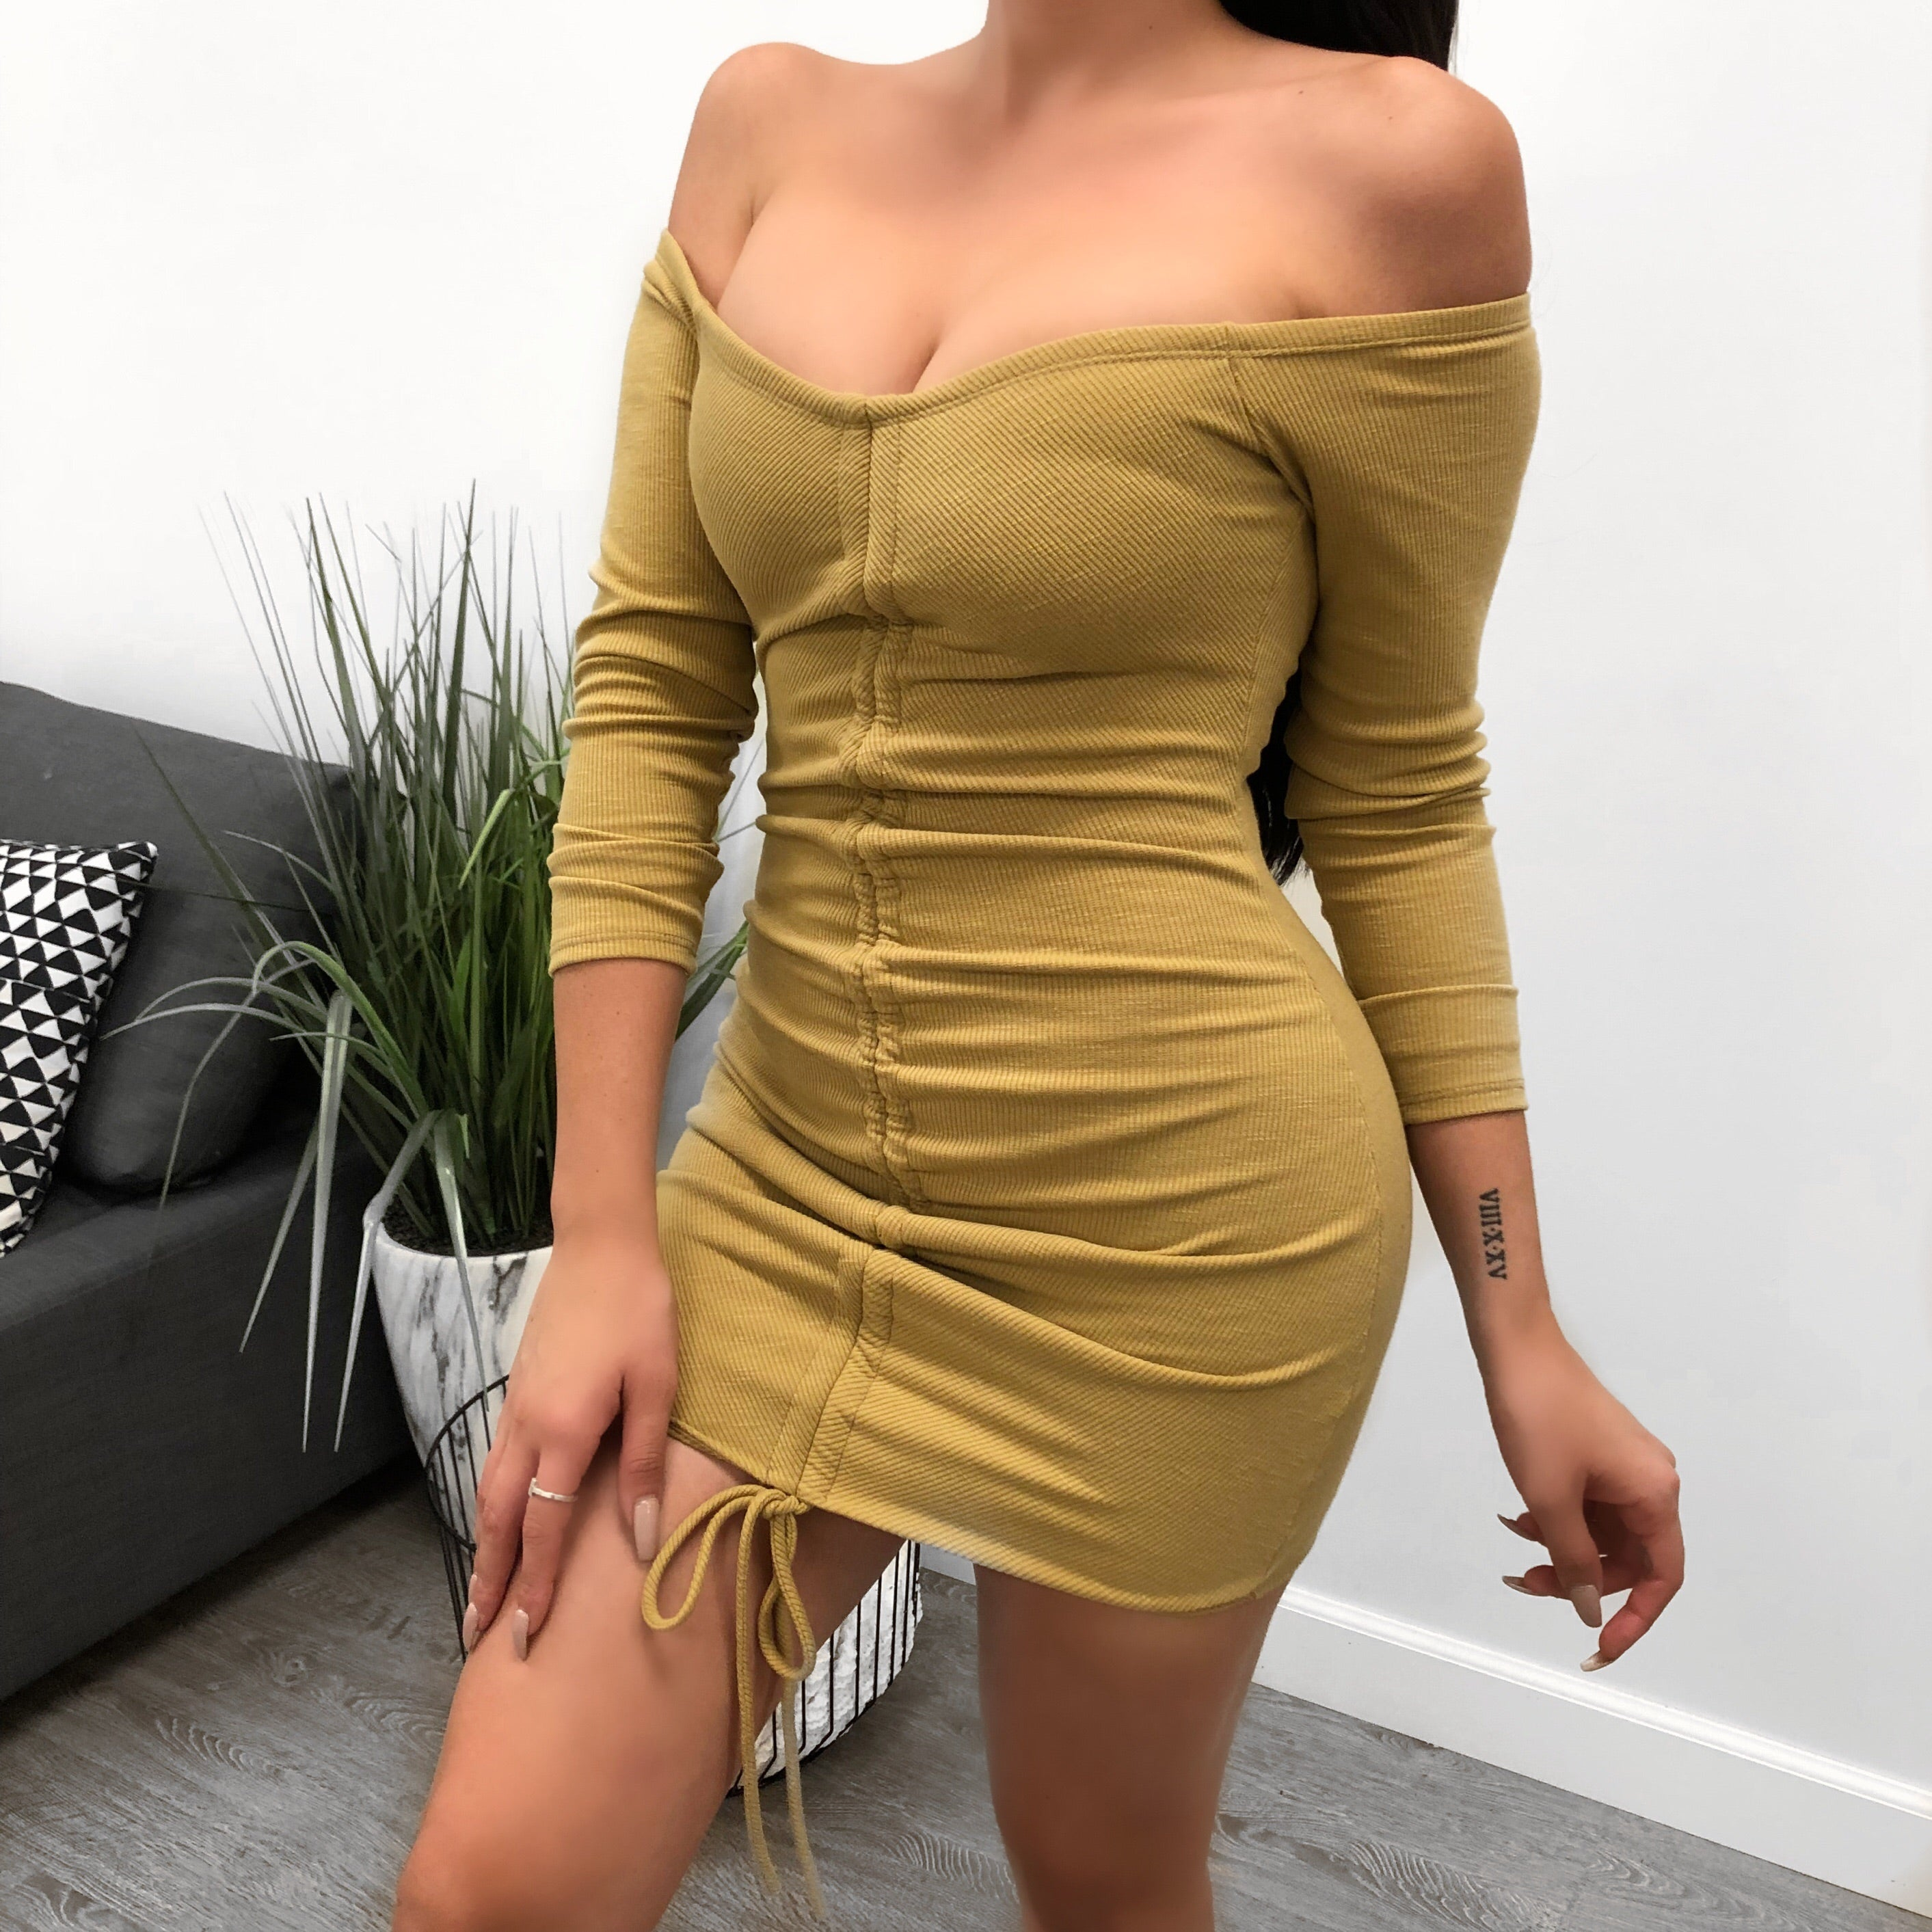 mustard long sleeve dress. off the shoulder. adjustable strings down the middle for preferred fit. above mid thigh length.